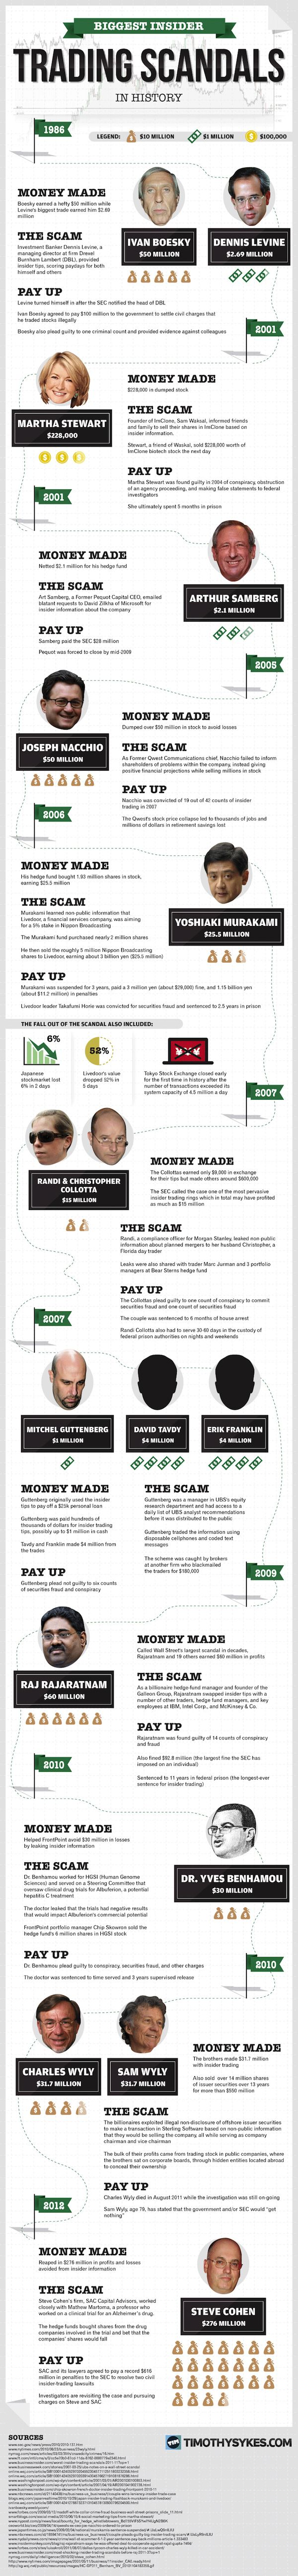 Insider trading is a big problem in Wall Street; here are the biggest insider trader scandals – which we know of!